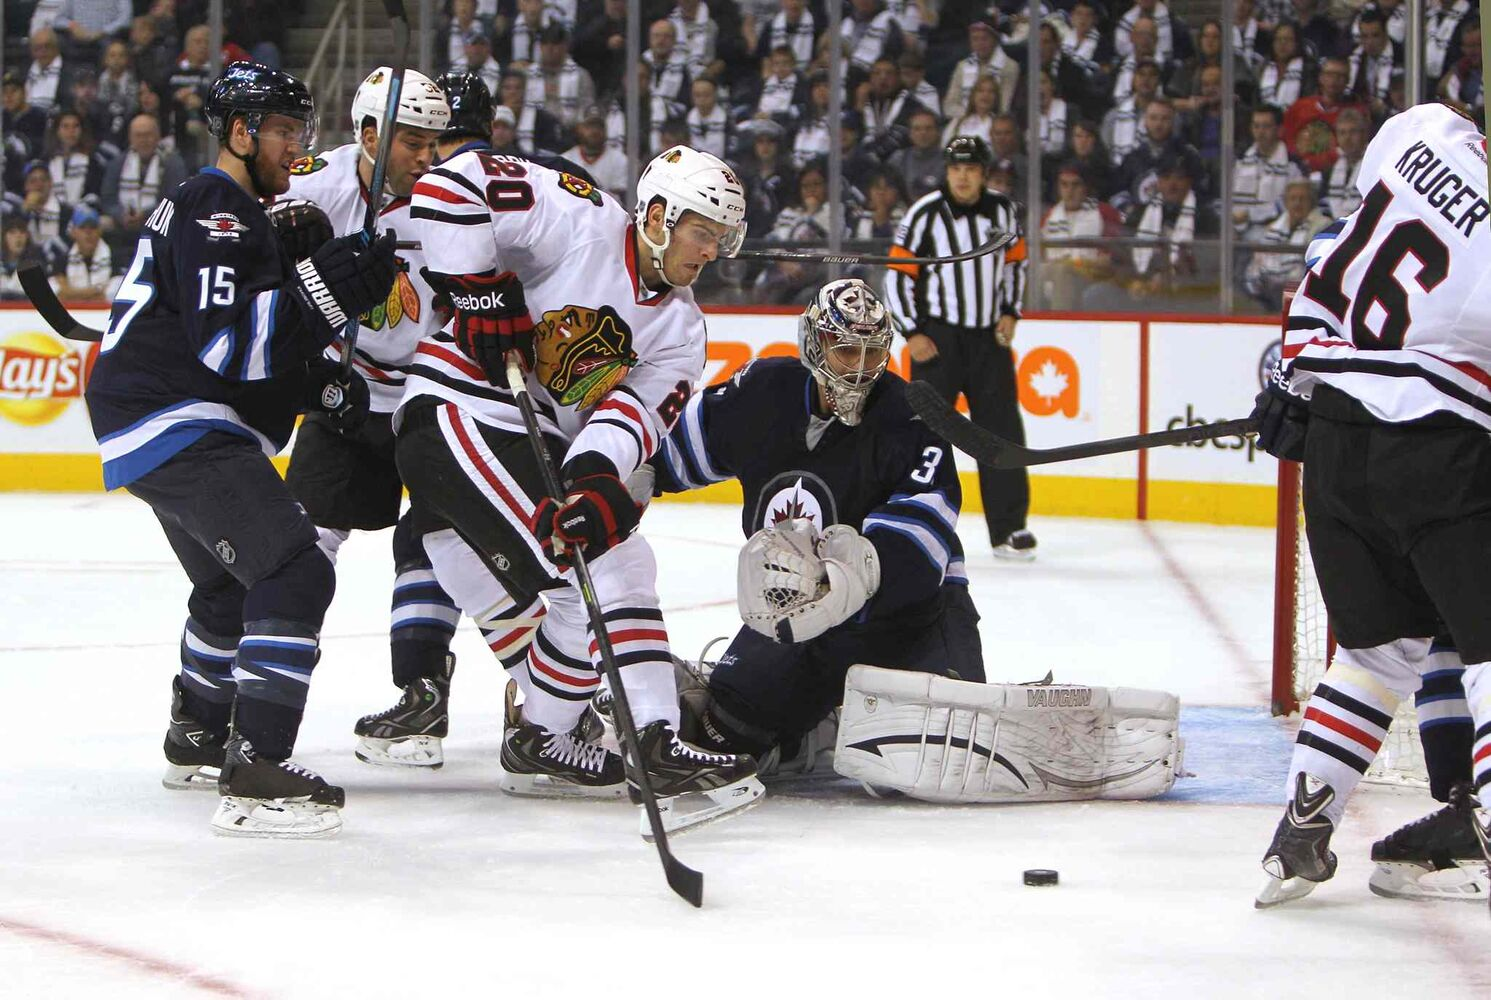 Brandon Saad of the Blackhawks tries to get the puck past Jets goalie Ondrej Pavelec during the first period. (Chicago Blackhawks #20 )